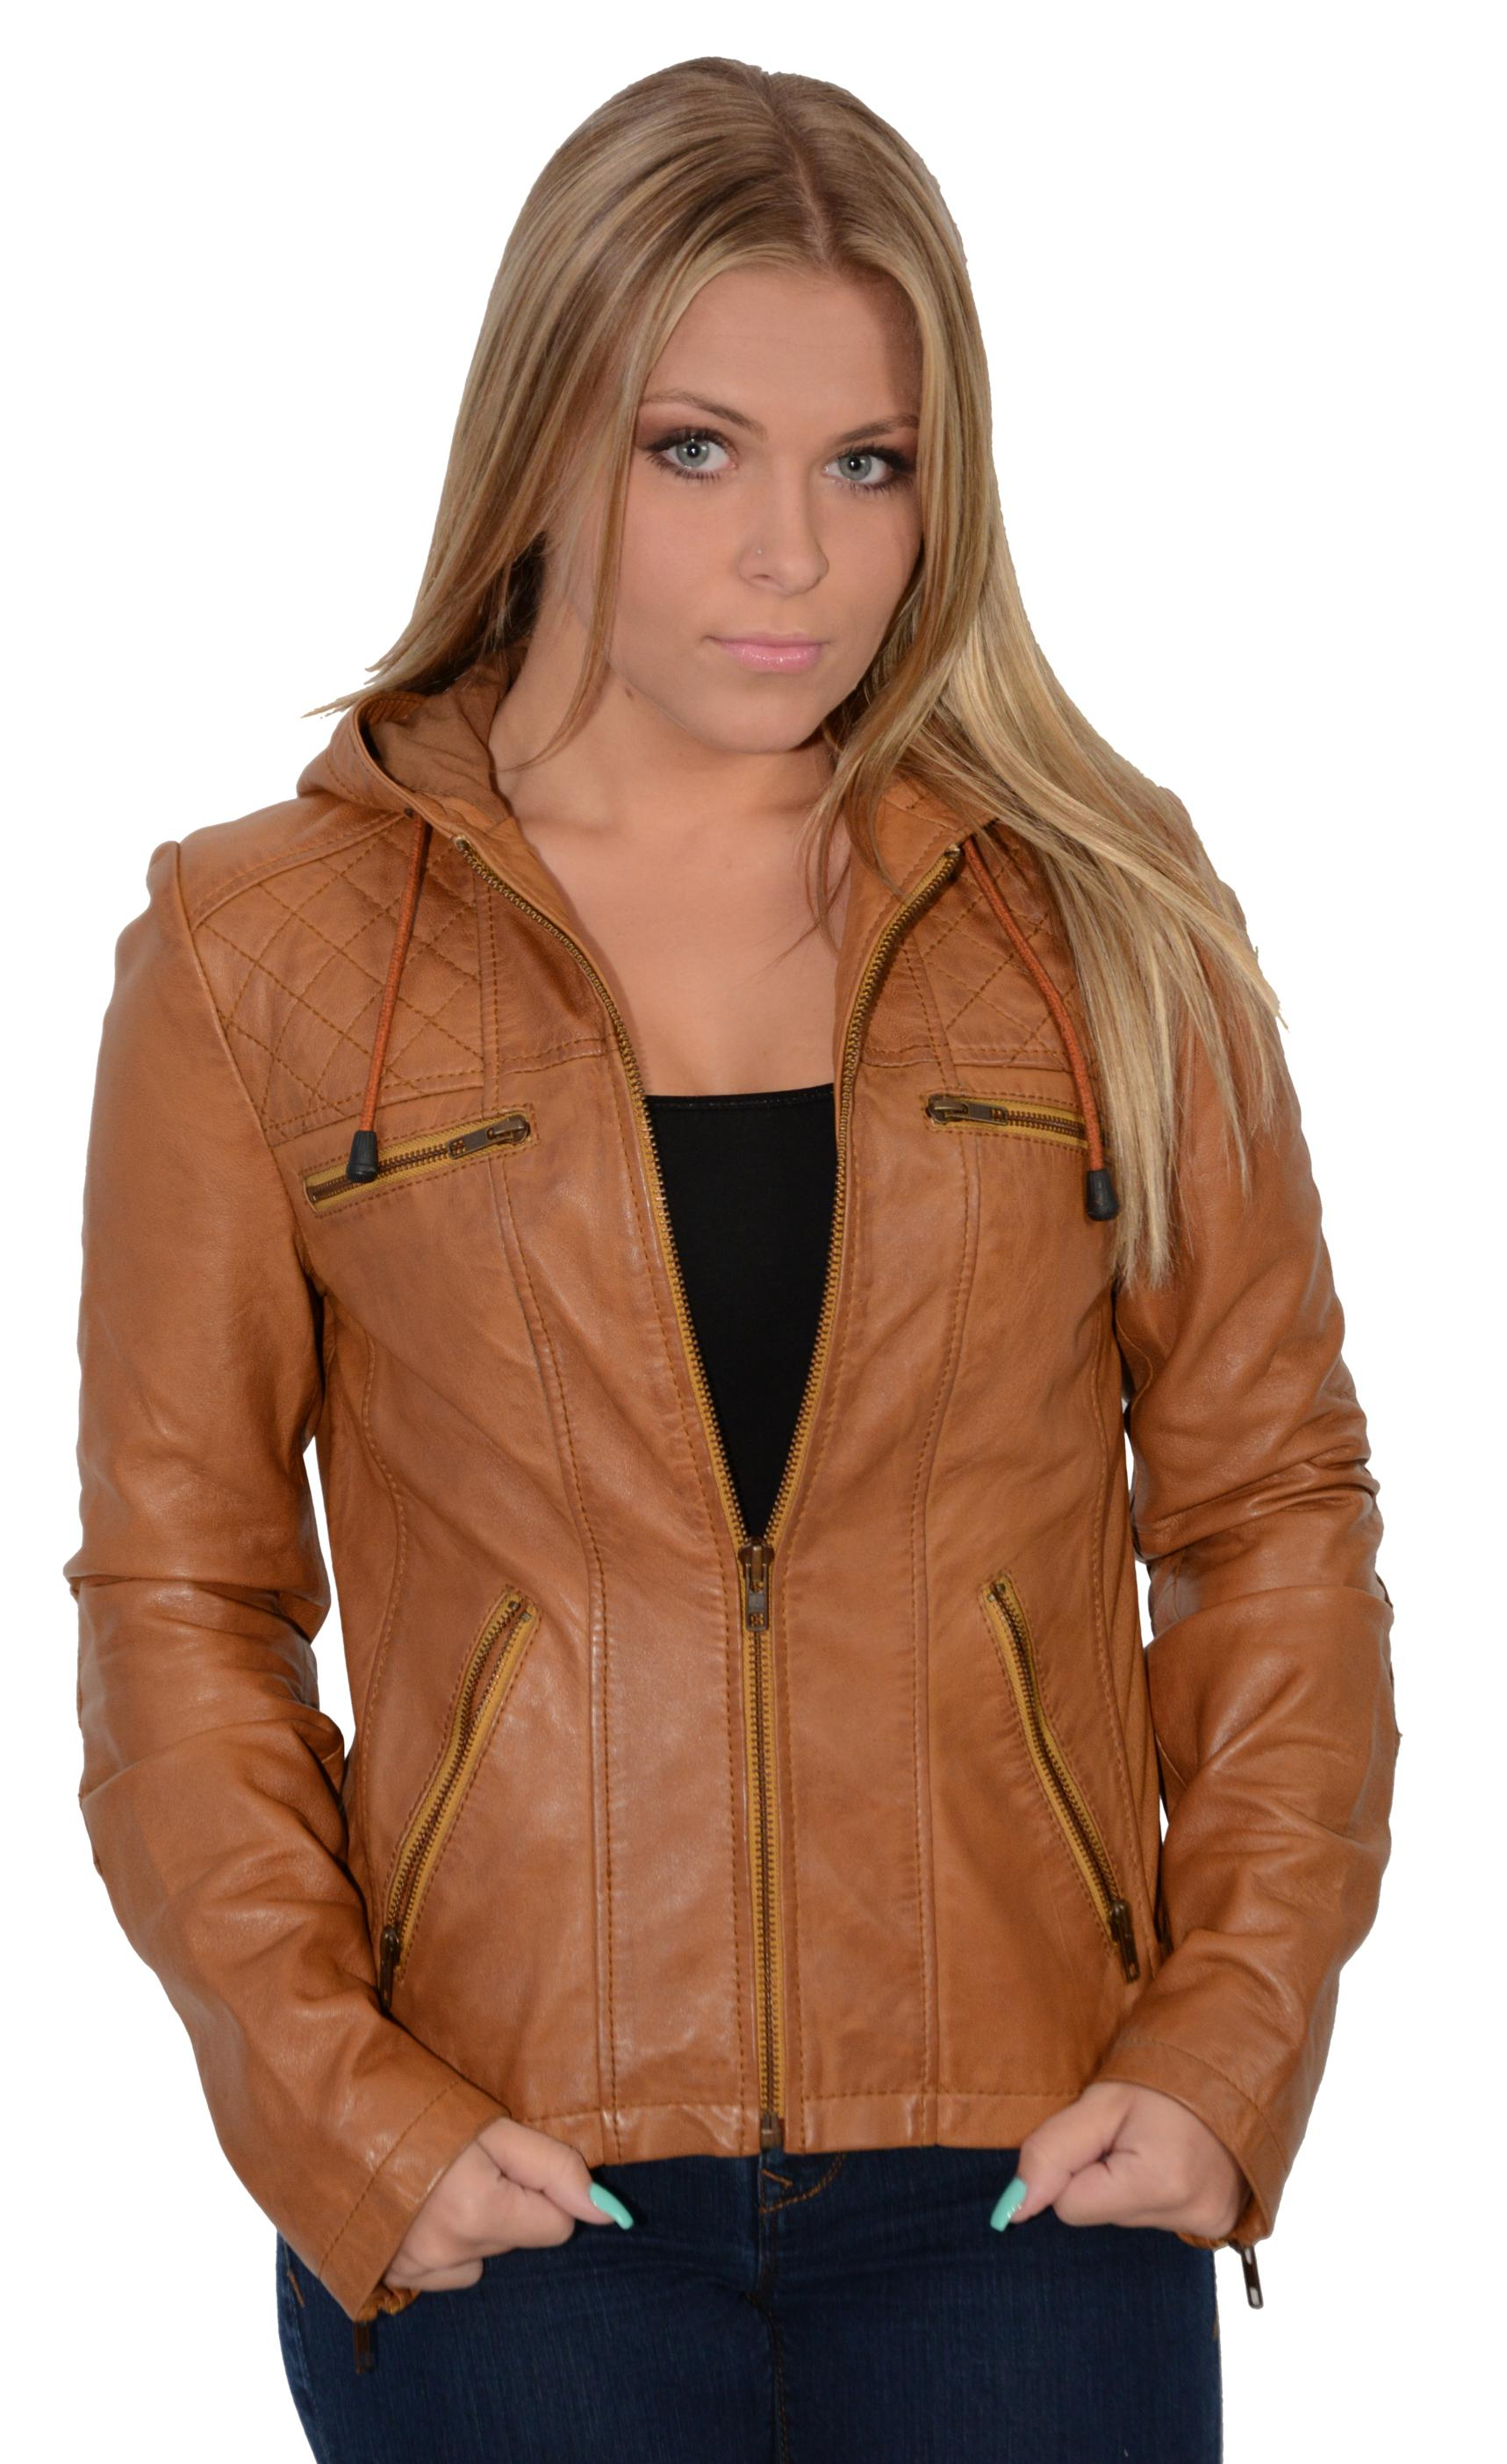 Womens brown leather jacket with hood